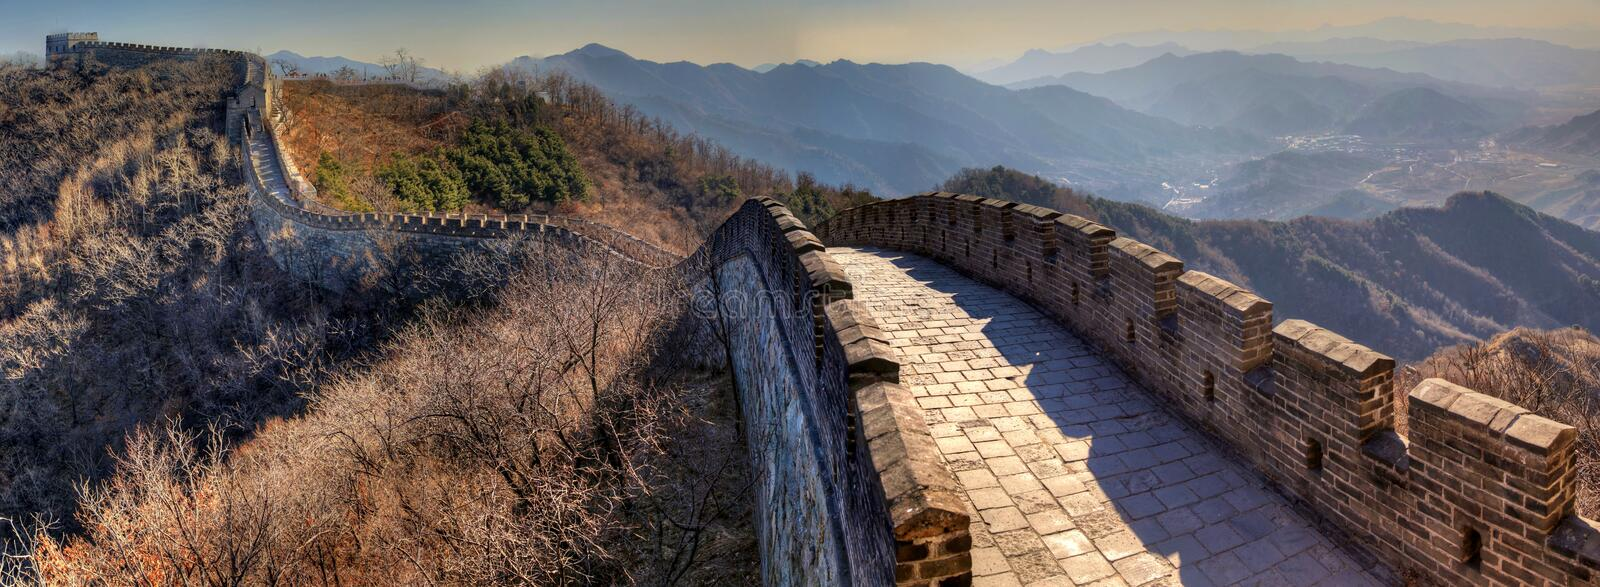 The great wall of china from right to left on a clear winter day royalty free stock images